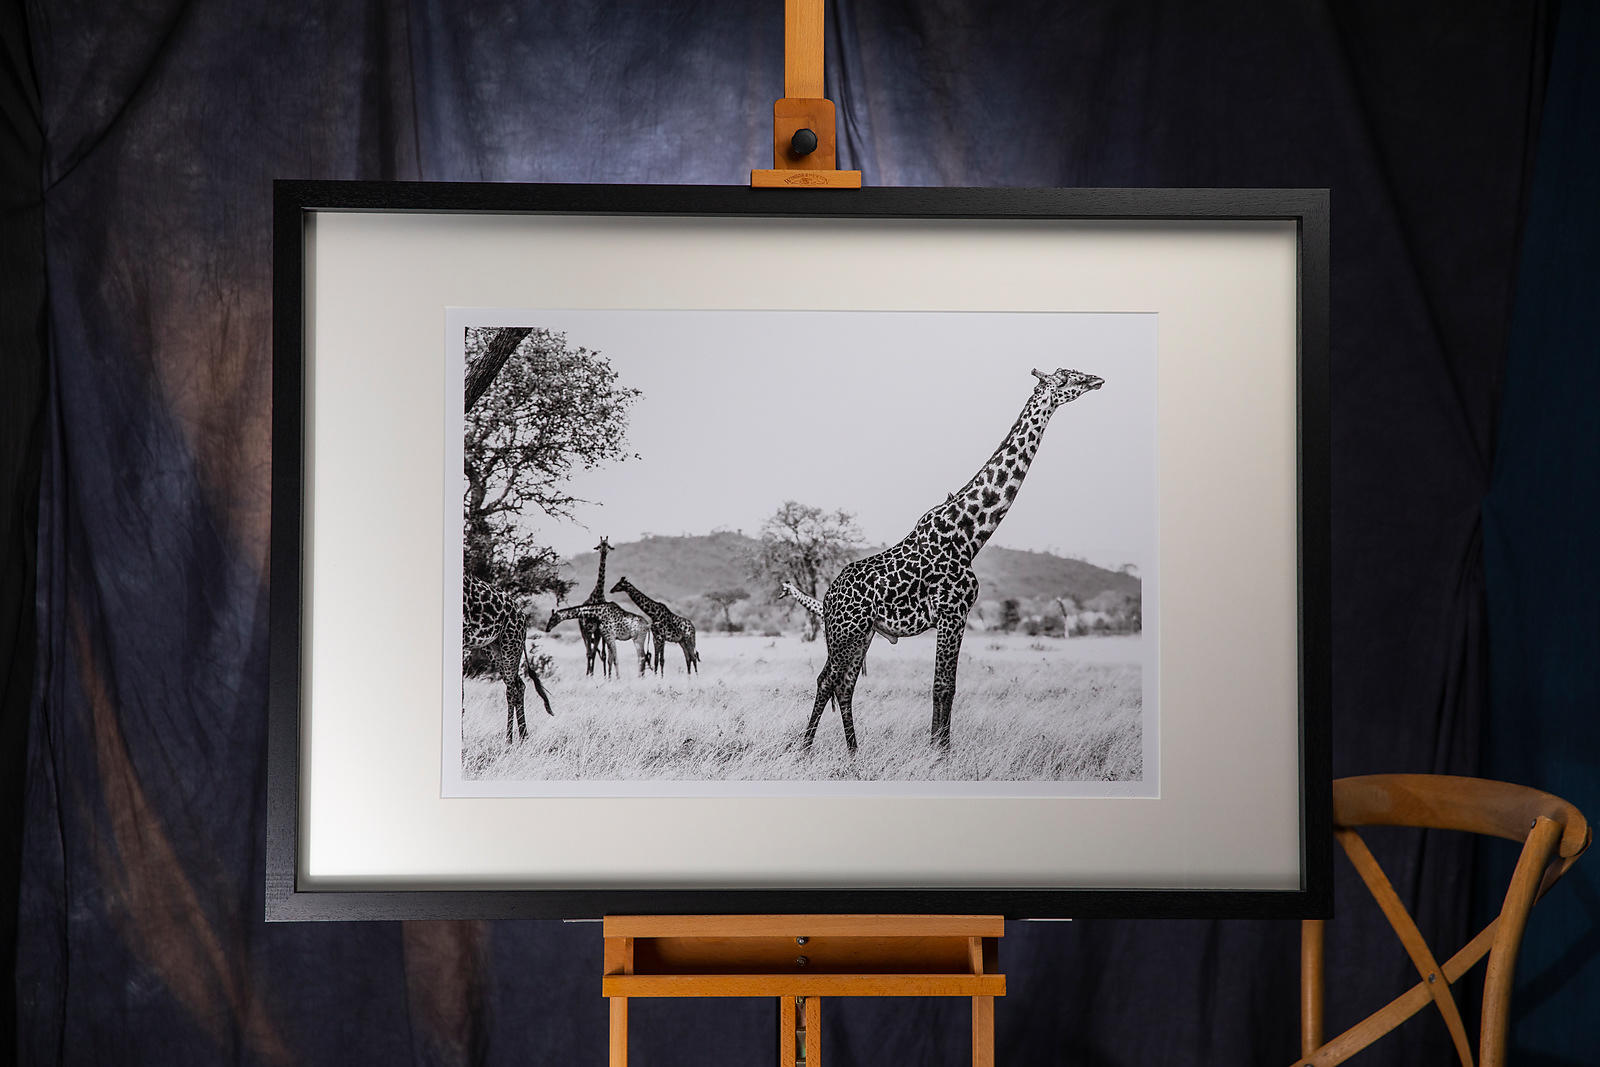 Singita Giraffe: Tanzania 2019: Photographer: Neil Emmerson £975 including UK VAT